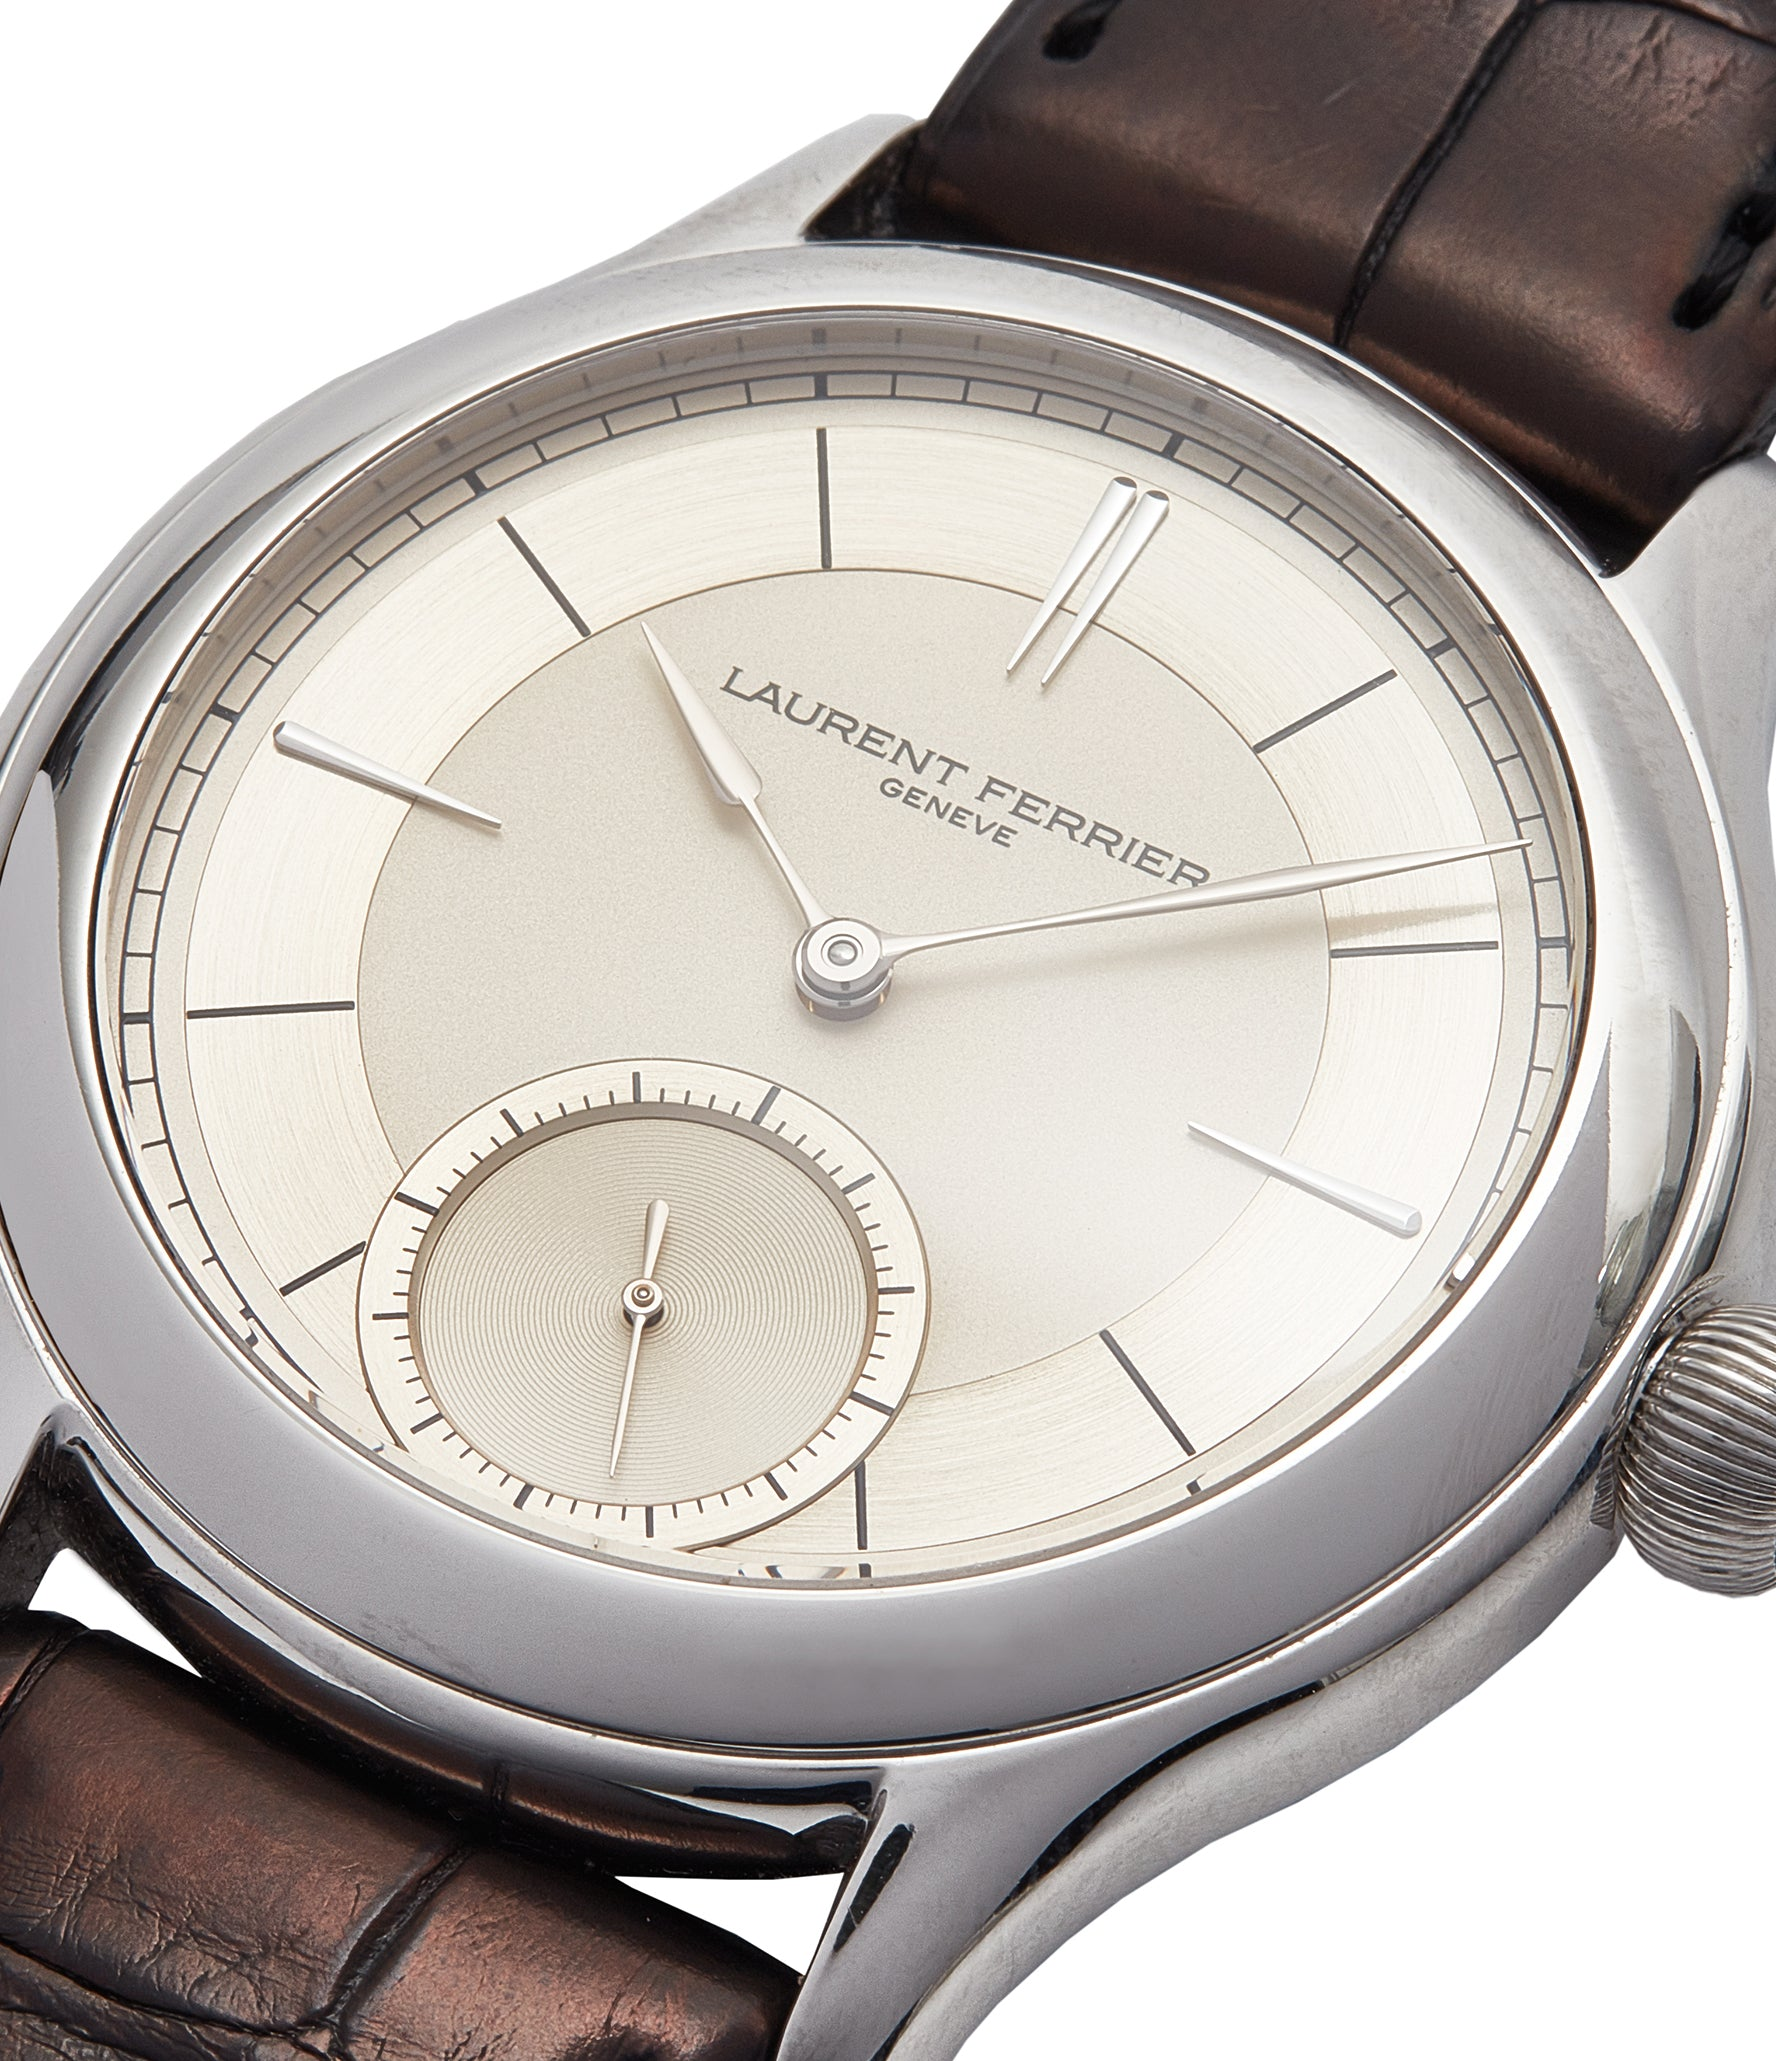 piece unique Laurent Ferrier Galet Micro-rotor 40 mm platinum time-only dress watch from independent watchmaker for sale online at A Collected Man London UK specialist of rare watches